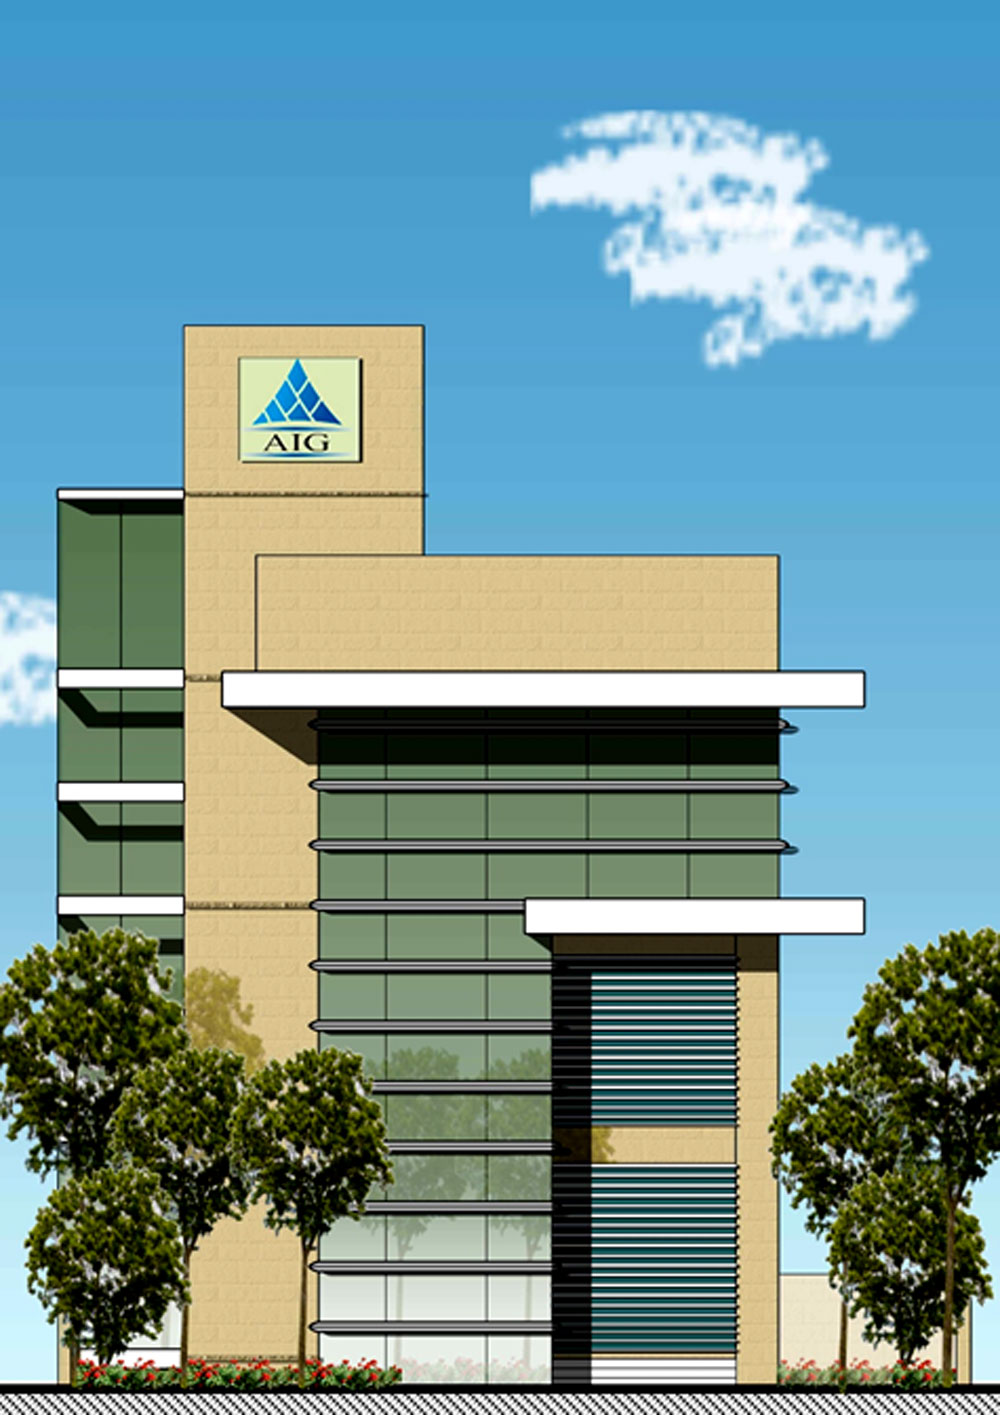 AIG Infratech Office Building and Tower